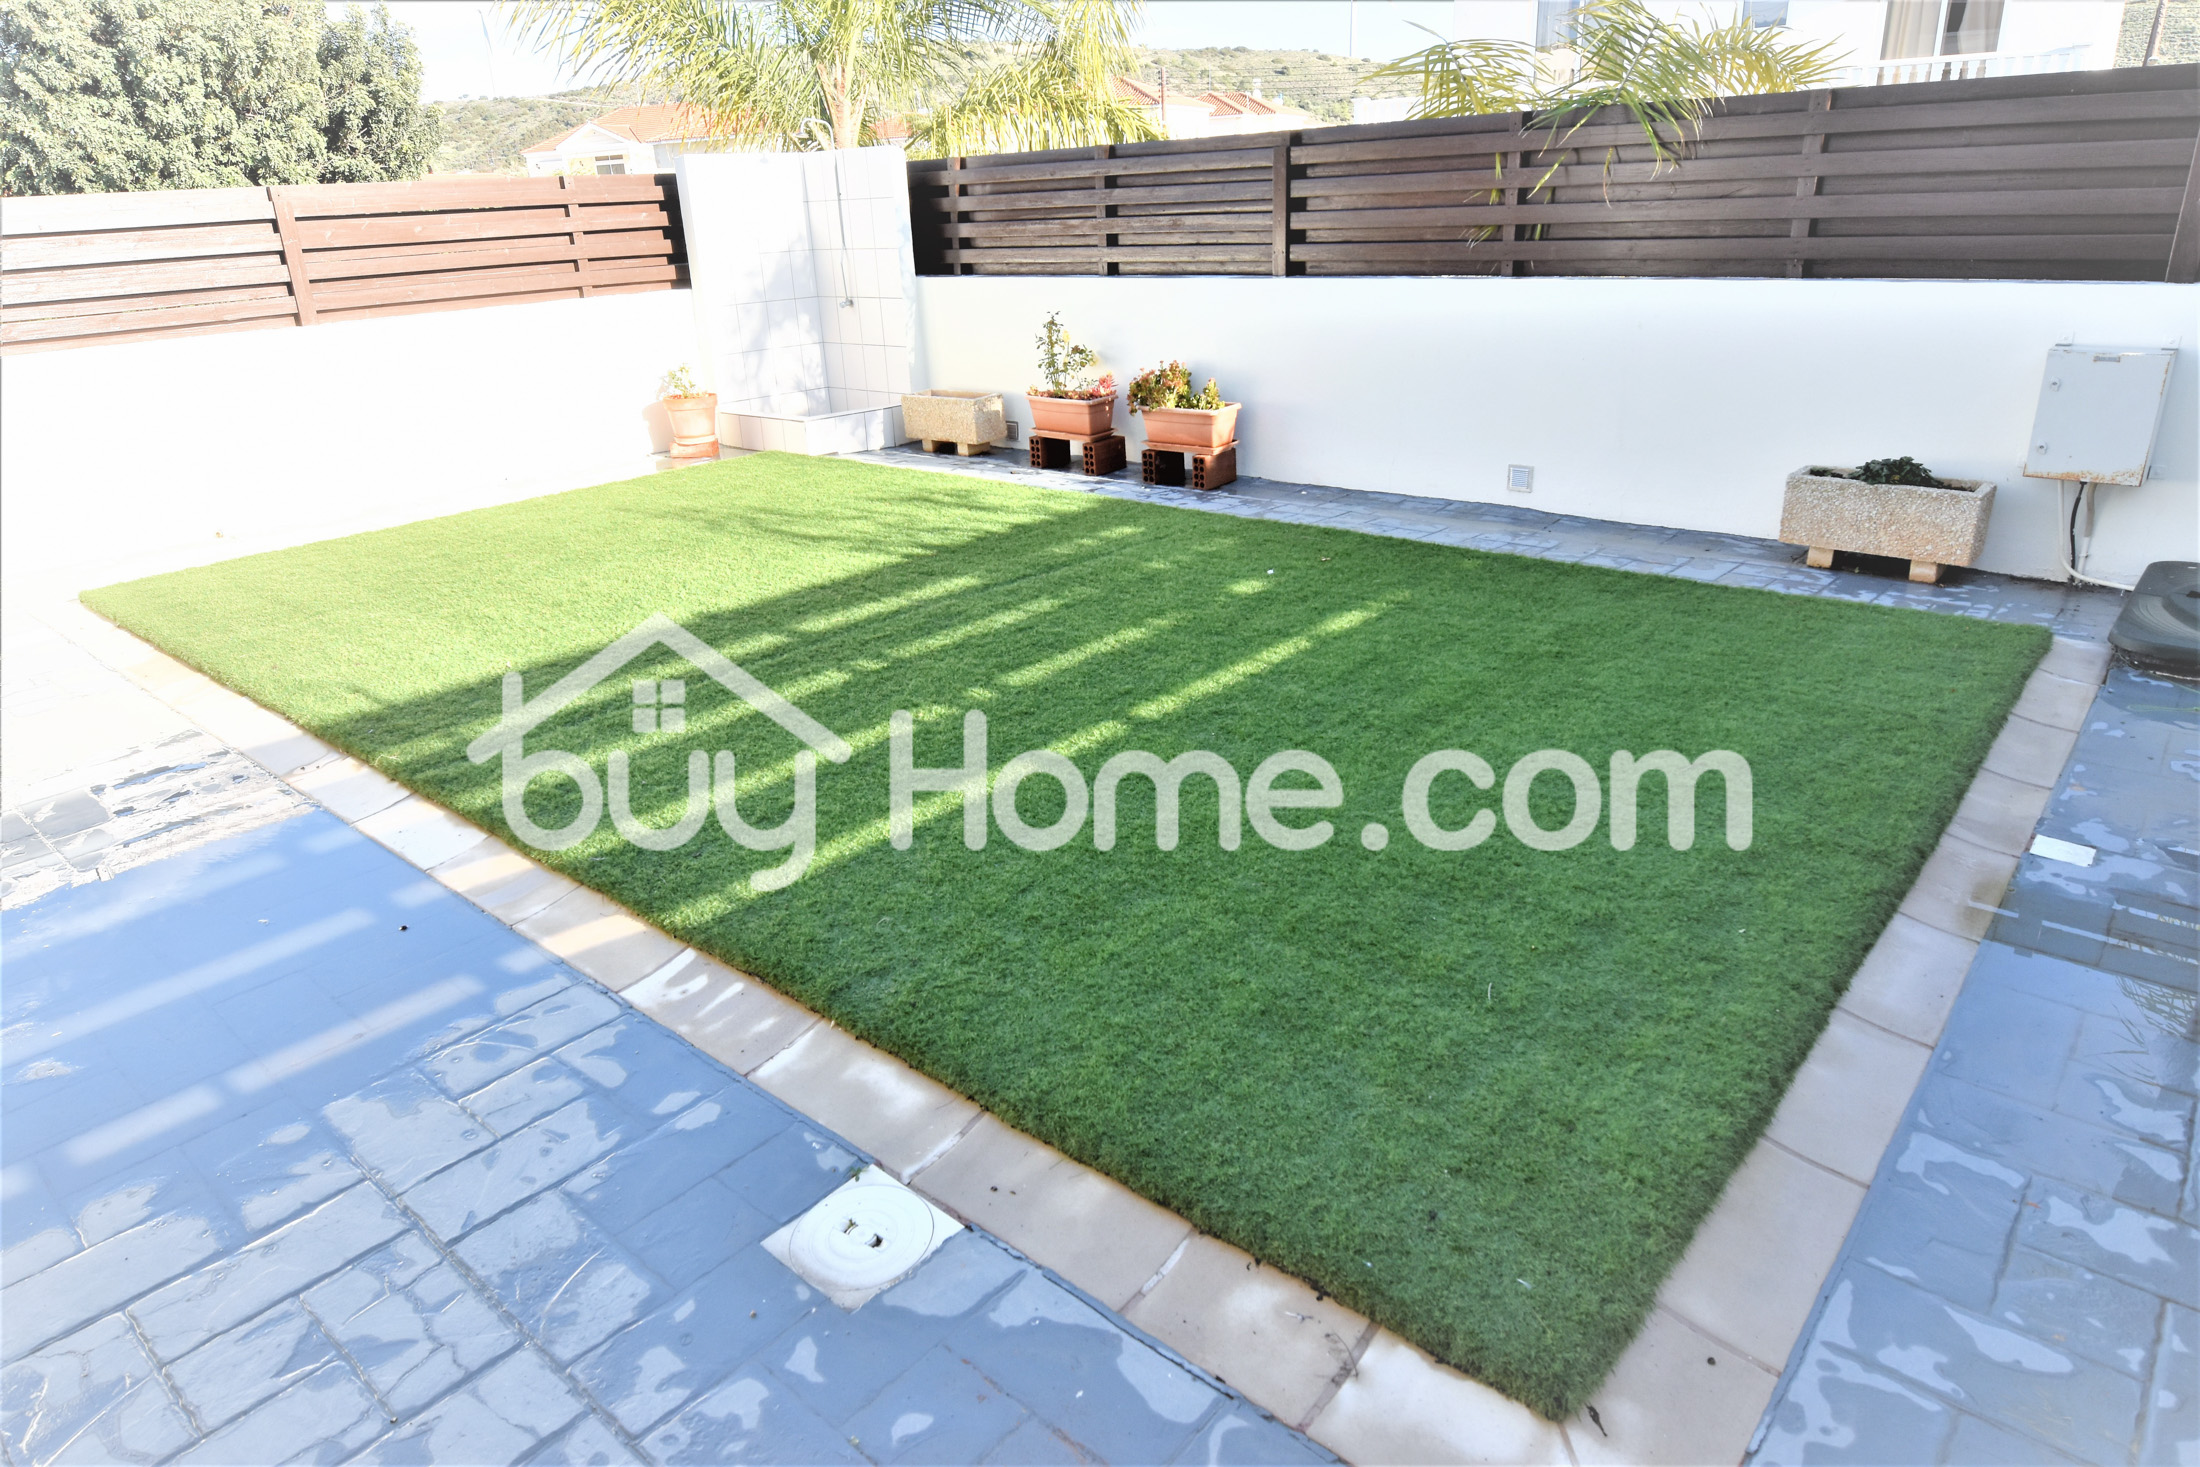 4 Bedroom House With A Pool | BuyHome